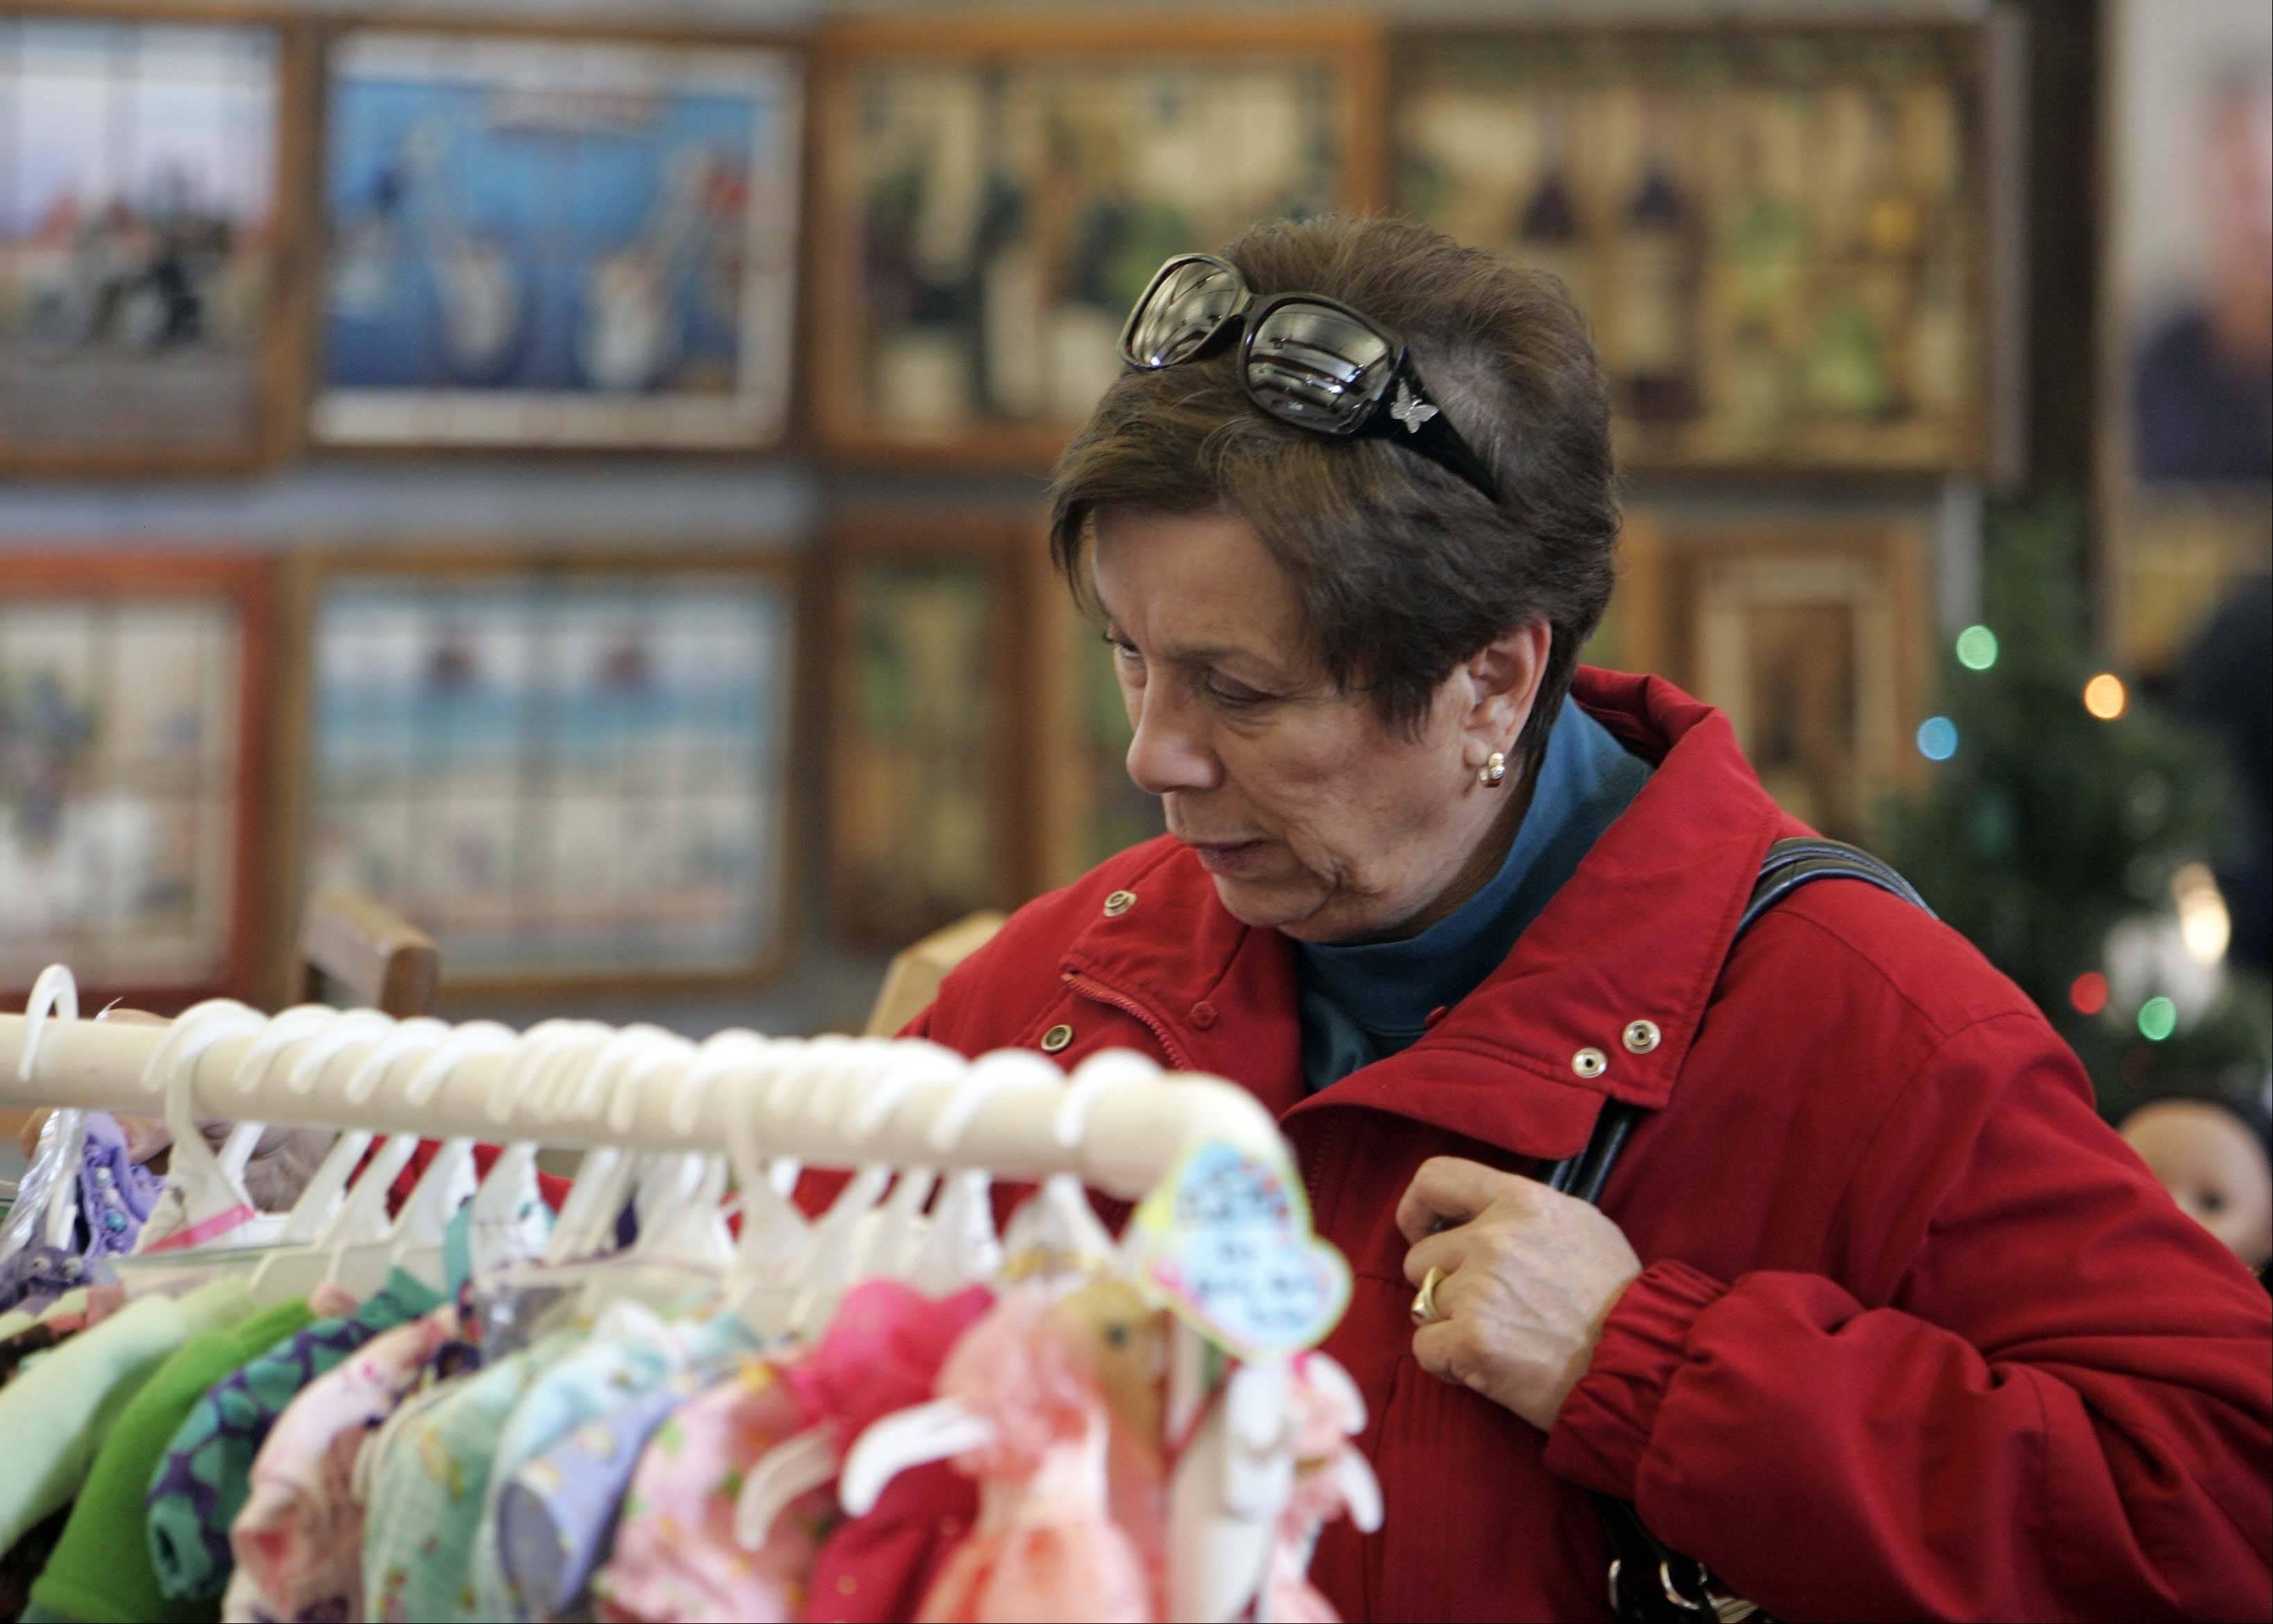 Angela Bell of Warrenville looks over some doll clothes during last year�s Christmas on the Fox juried art and craft show at the Kane County Fairgrounds in St. Charles. Bell was helping a friend find some handmade doll clothes for her granddaughter.